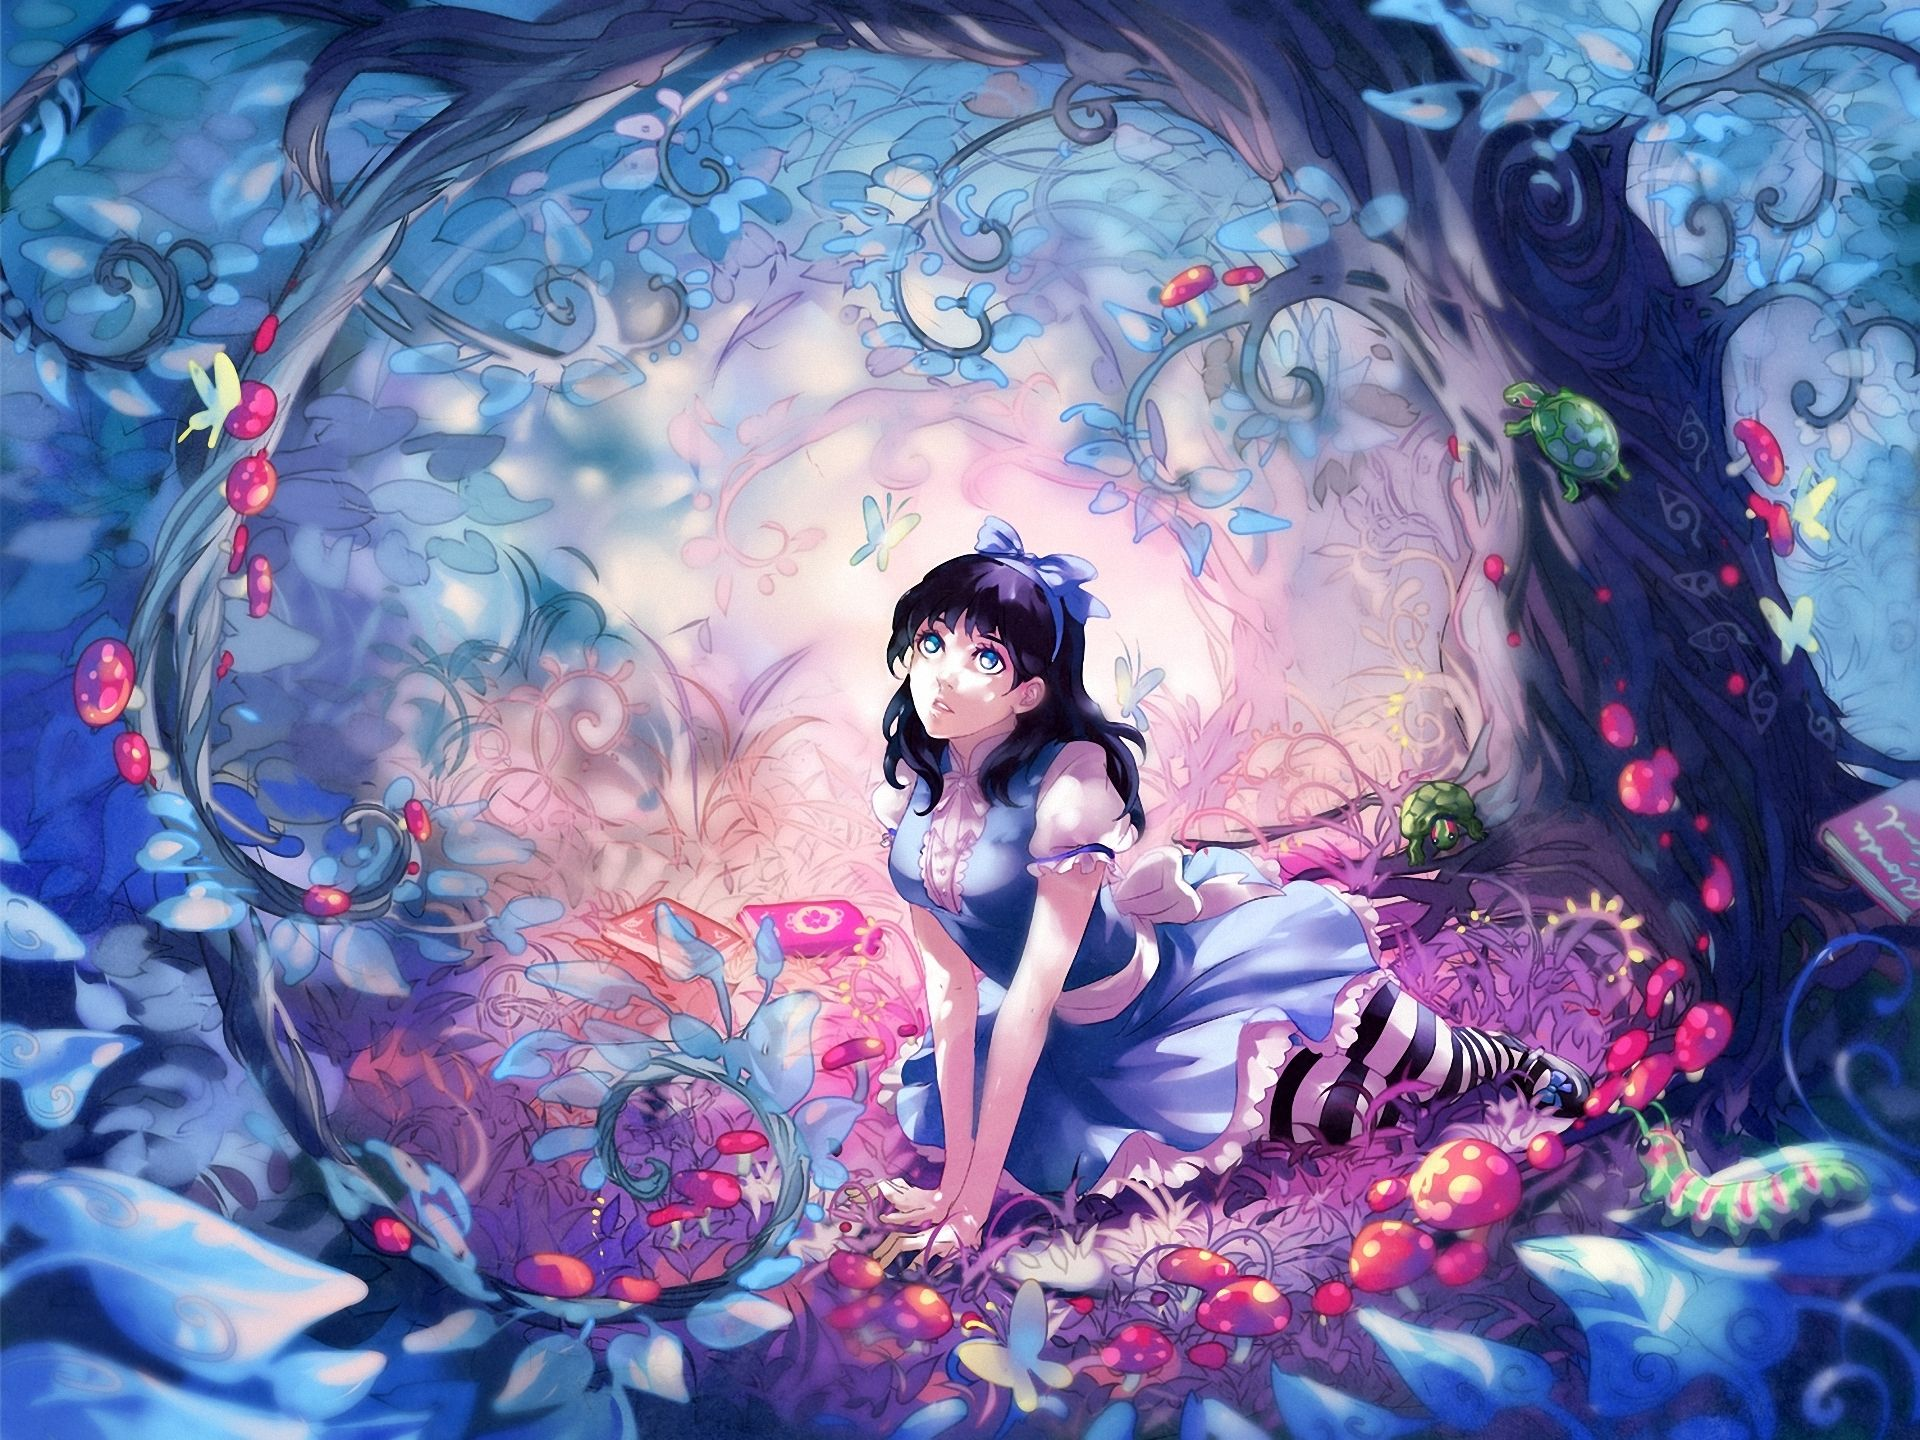 Anime Alice In Wonderland Wallpaper Alice In Wonderland Anime